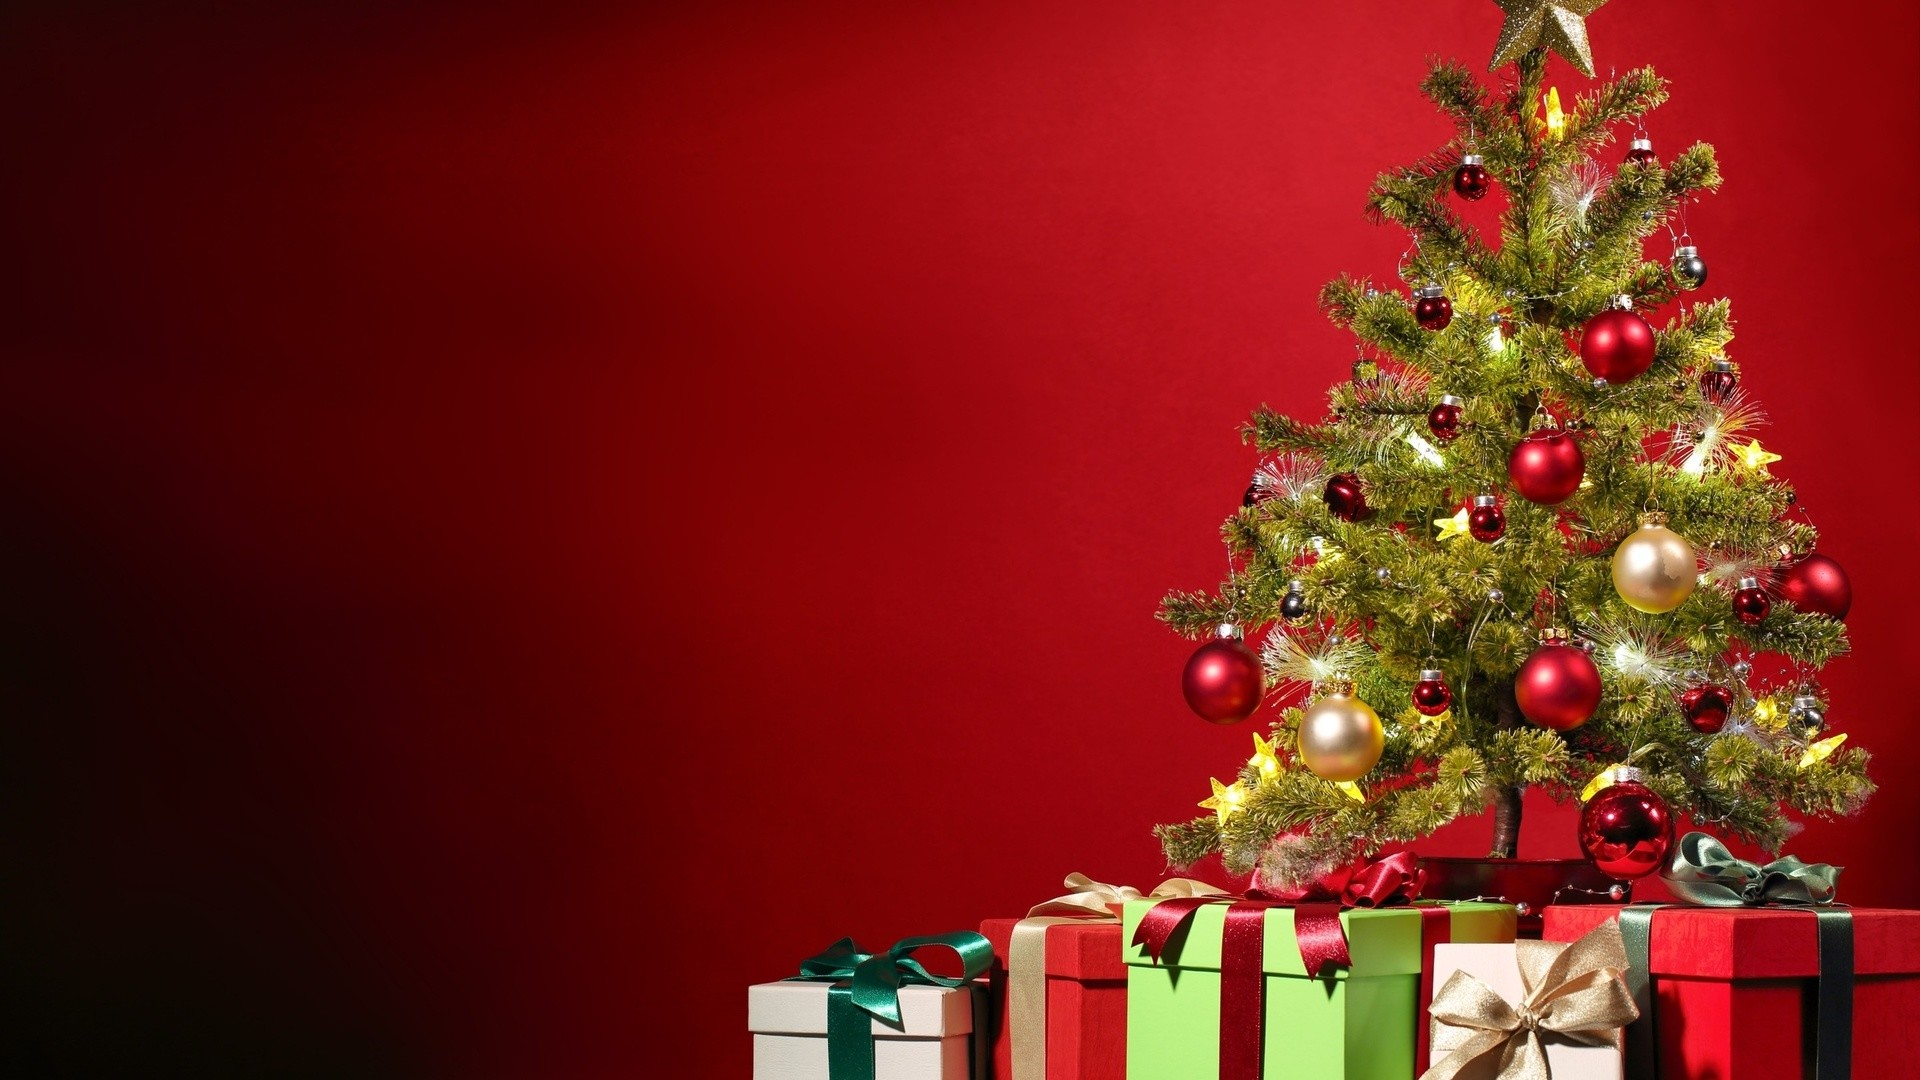 Merry Christmas tree free download wallpaper 2015 | Wallpapers ...